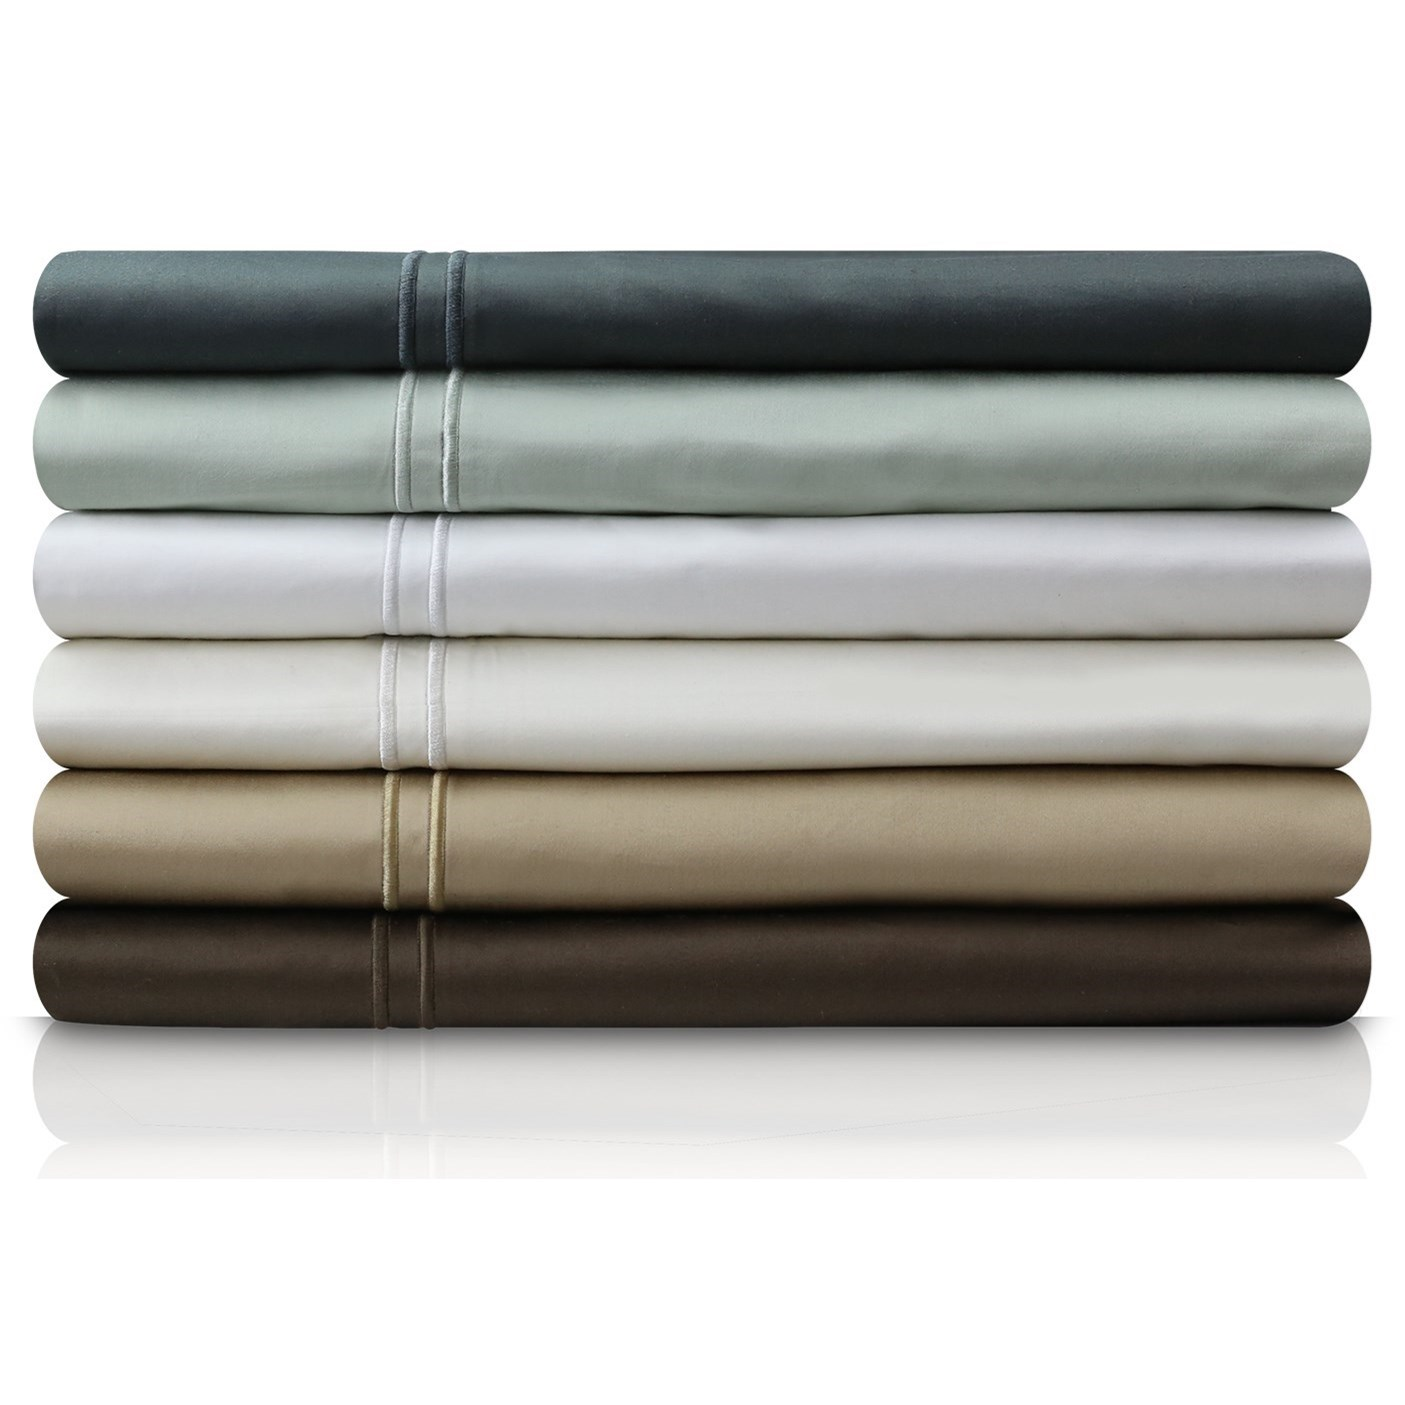 Malouf Egyptian Cotton Twin 600 TC Egyptian Cotton Sheet Set - Item Number: MA06TTWHSS